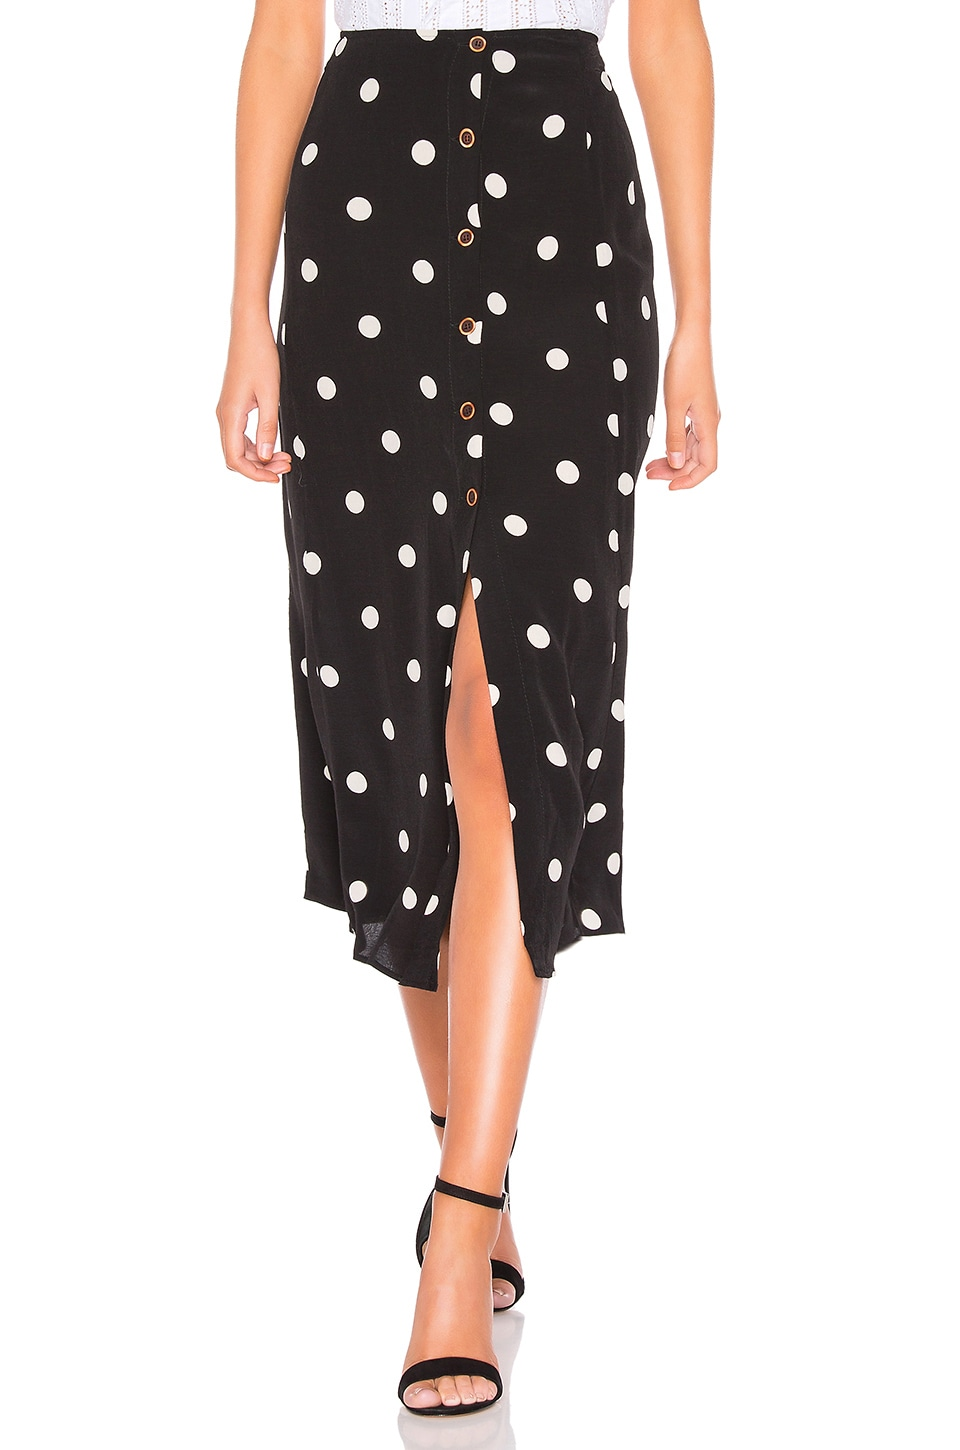 Free People Retro Love Midi Skirt in Black & White Combo